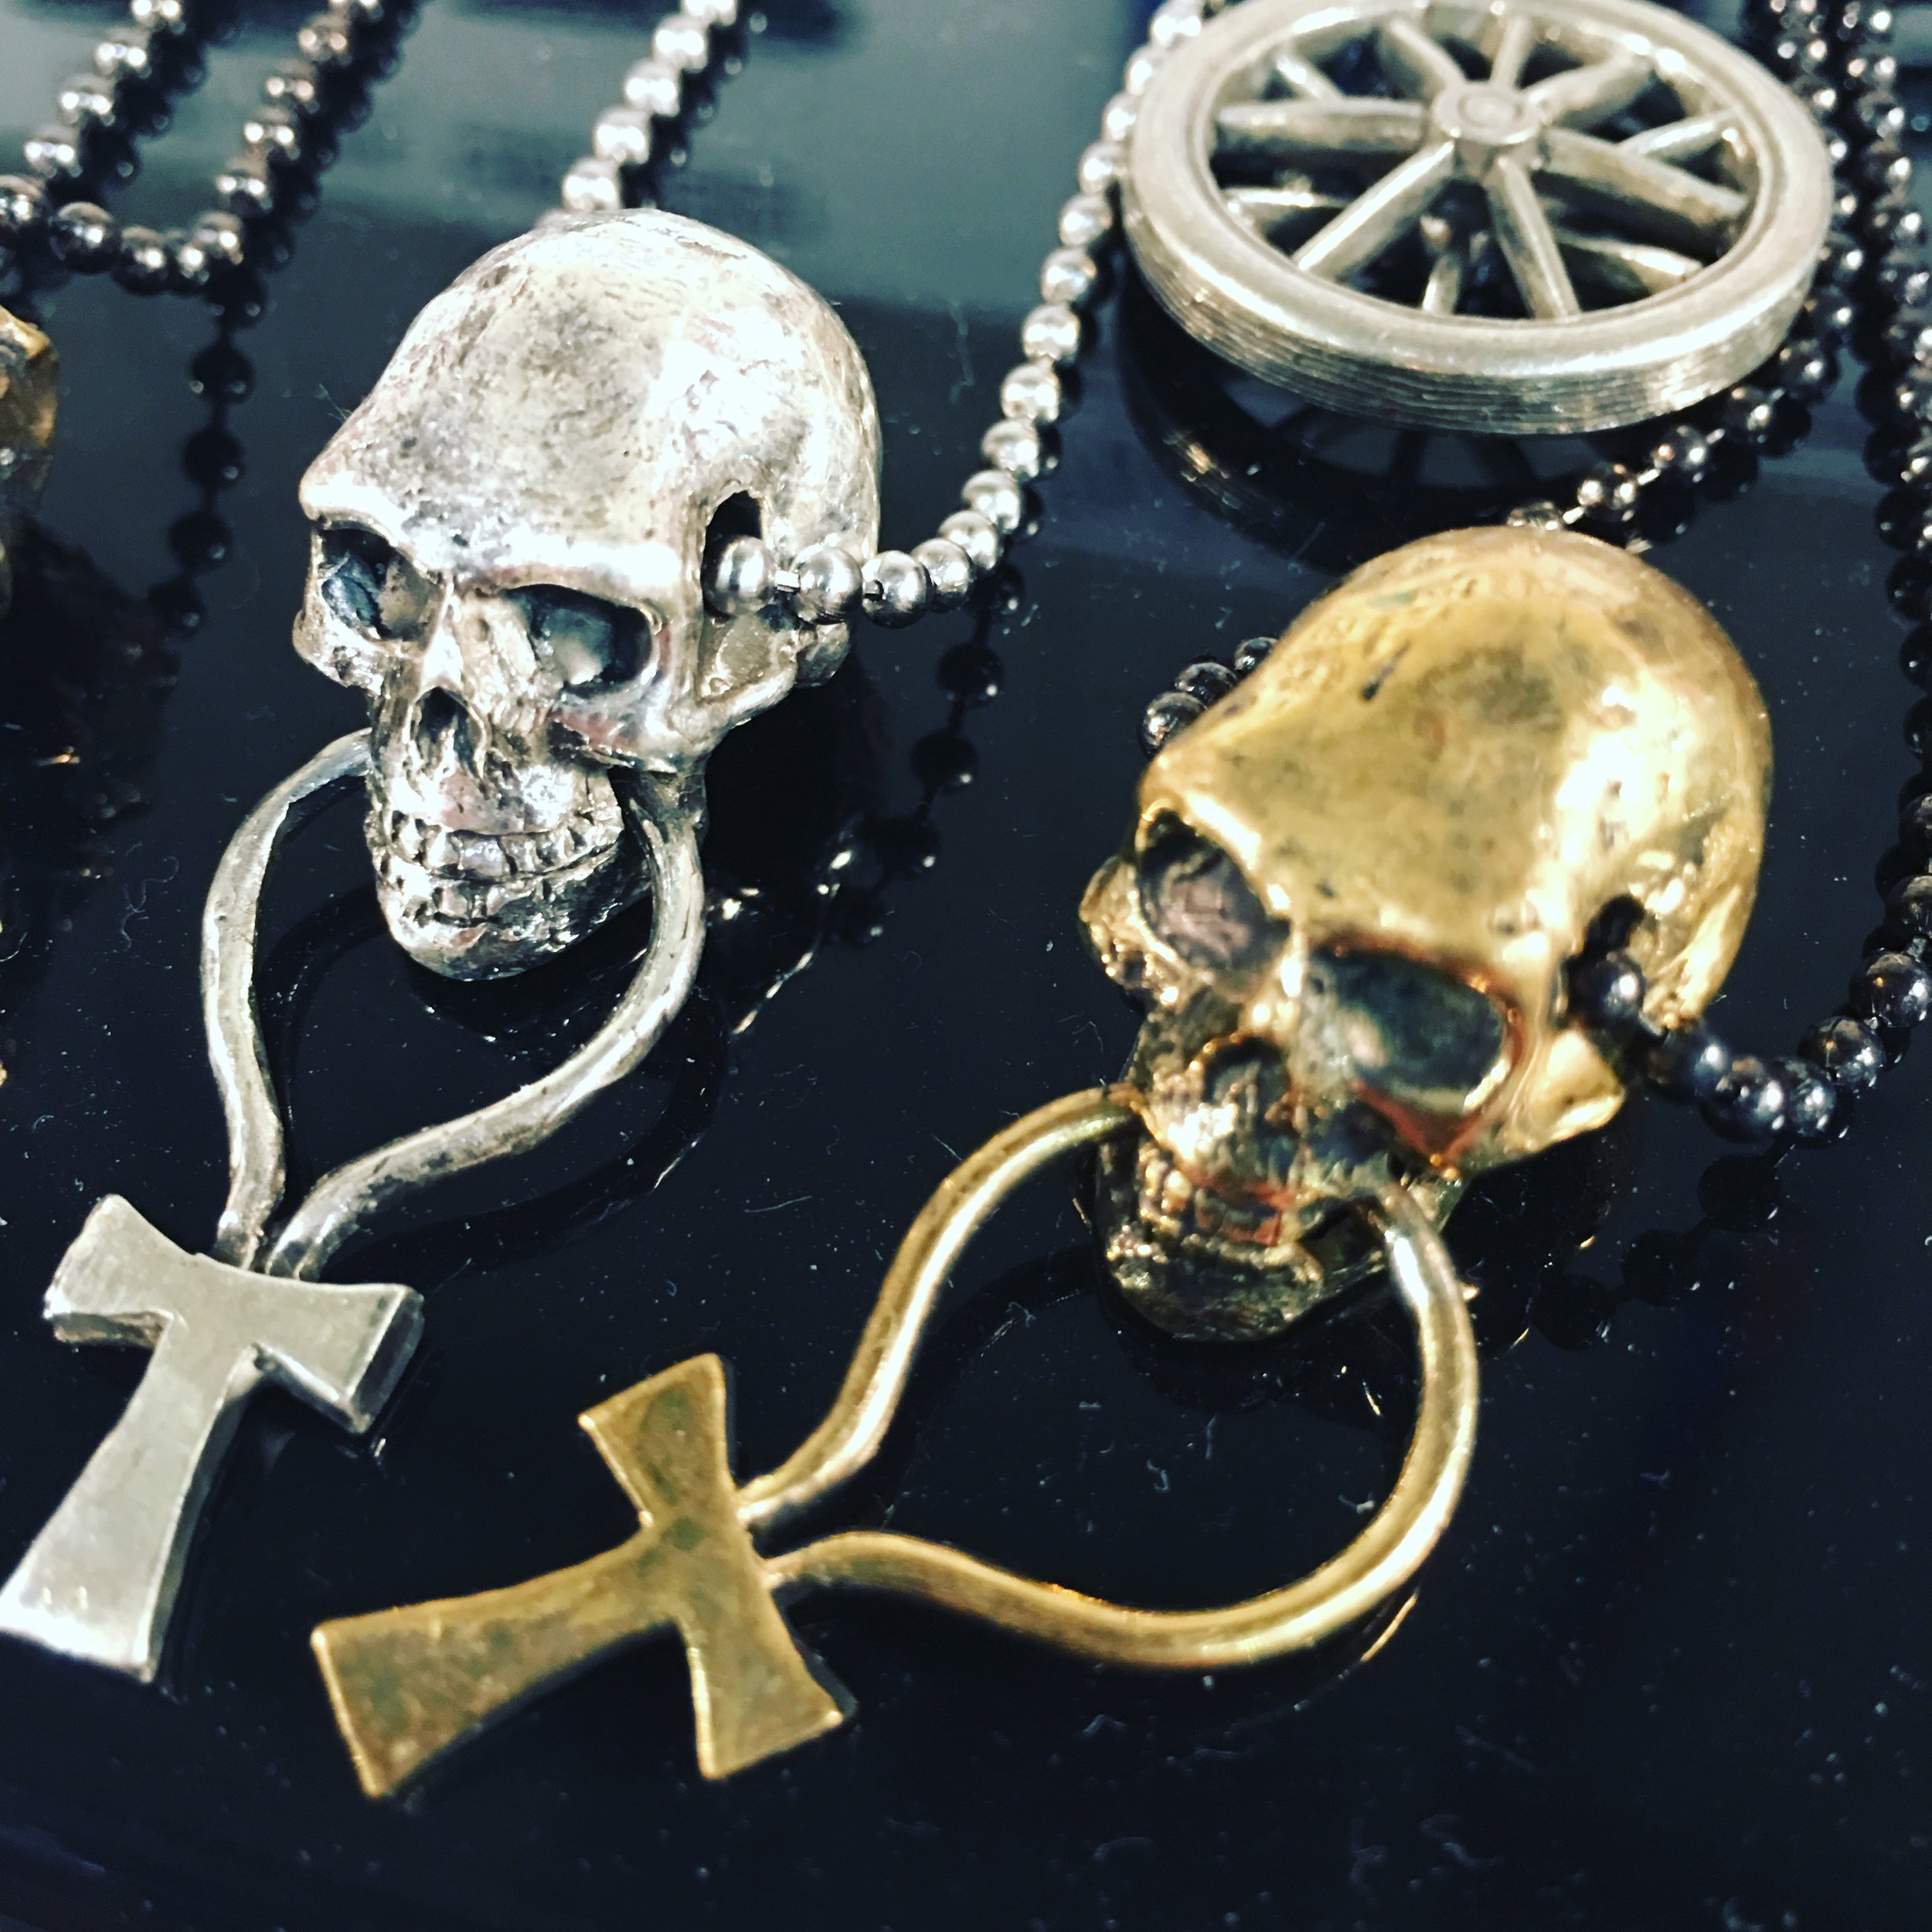 Skull Onk Pendant Necklace, Sterling Silver or Bronze with Chain